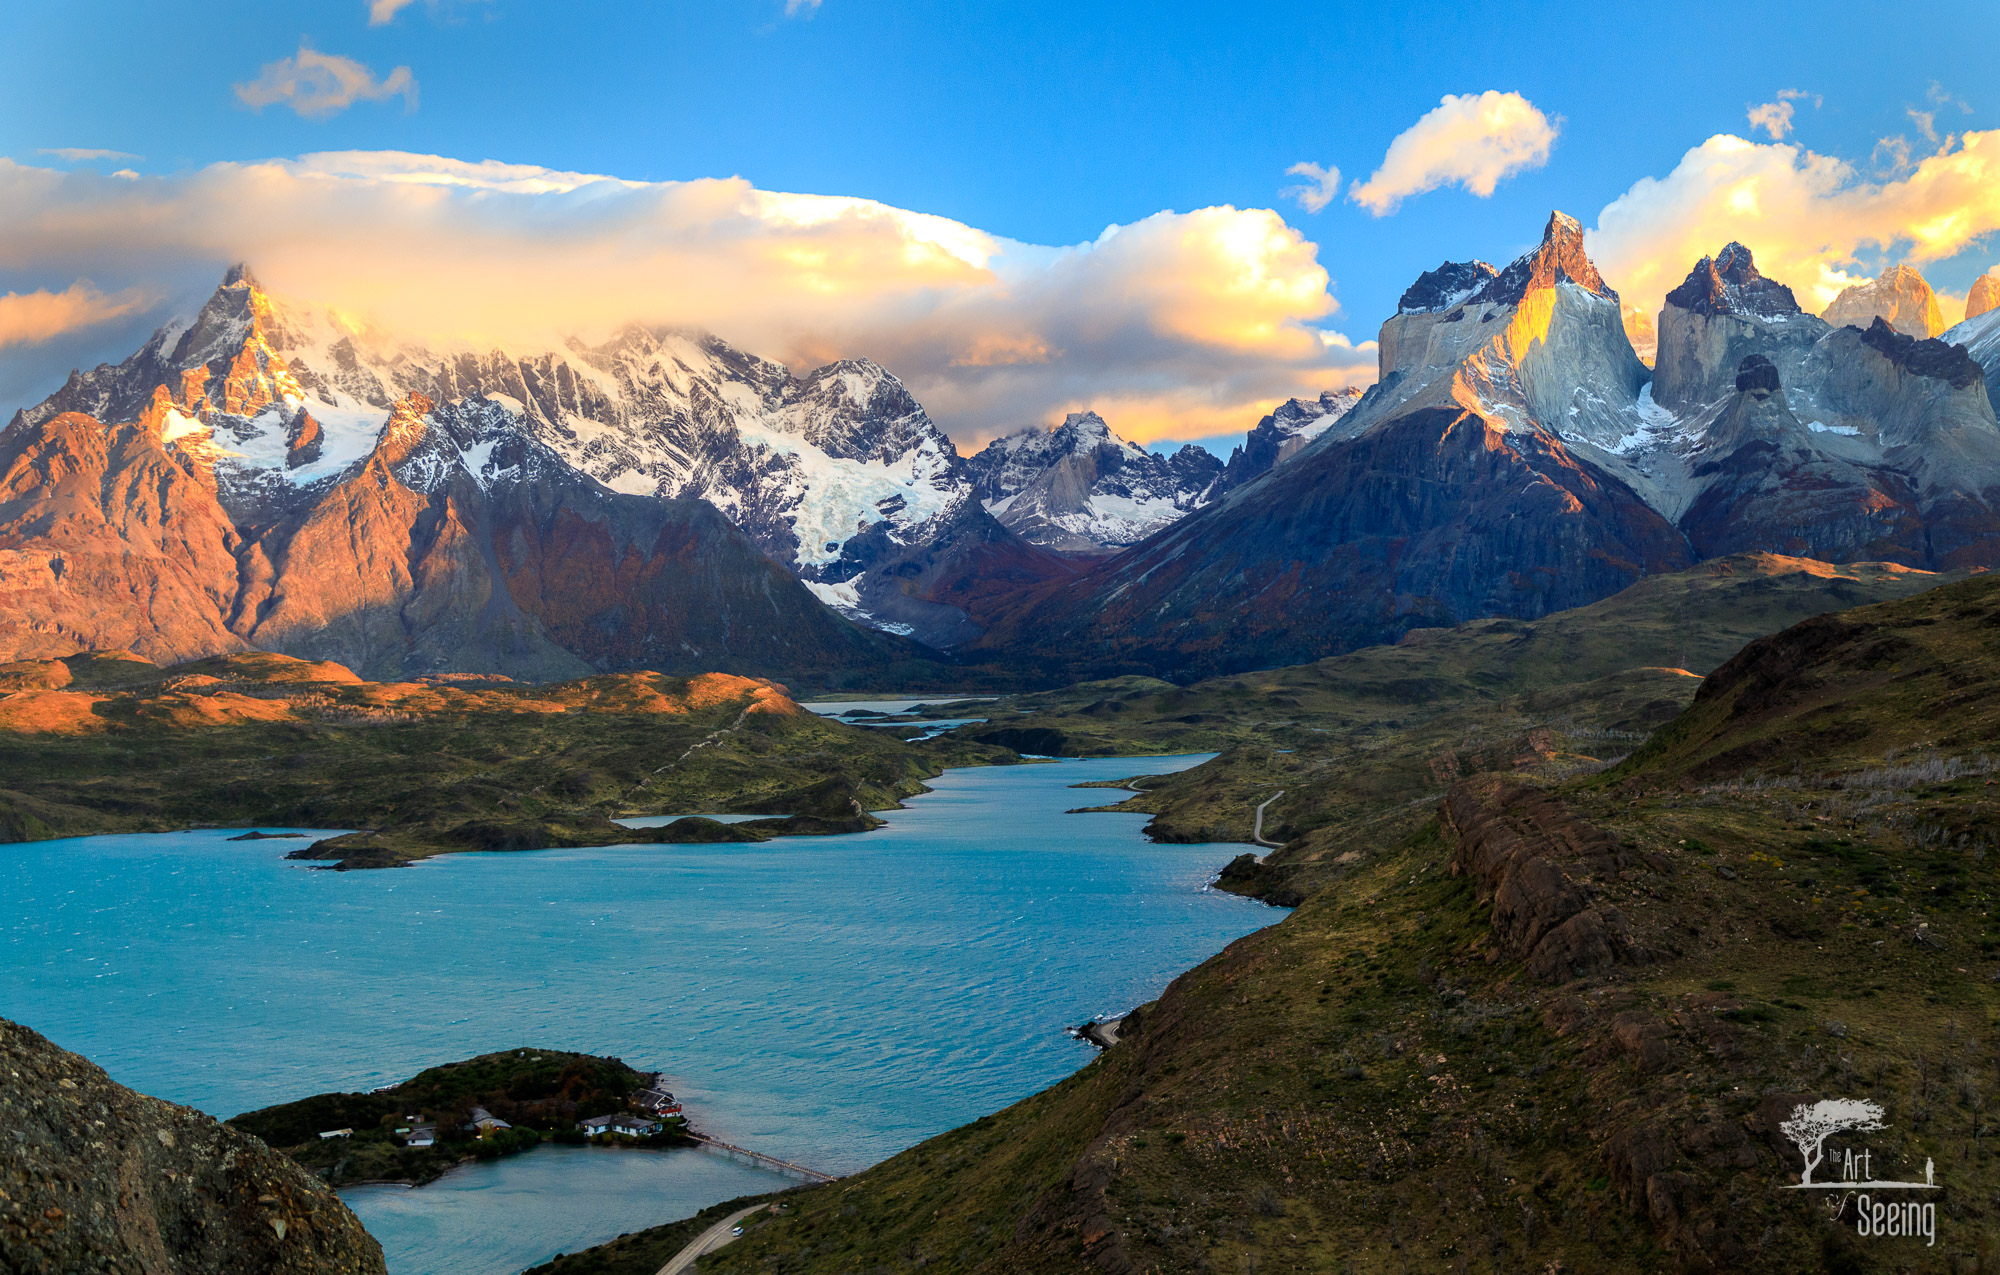 Patagonia Photography and Travel Guide 4 image